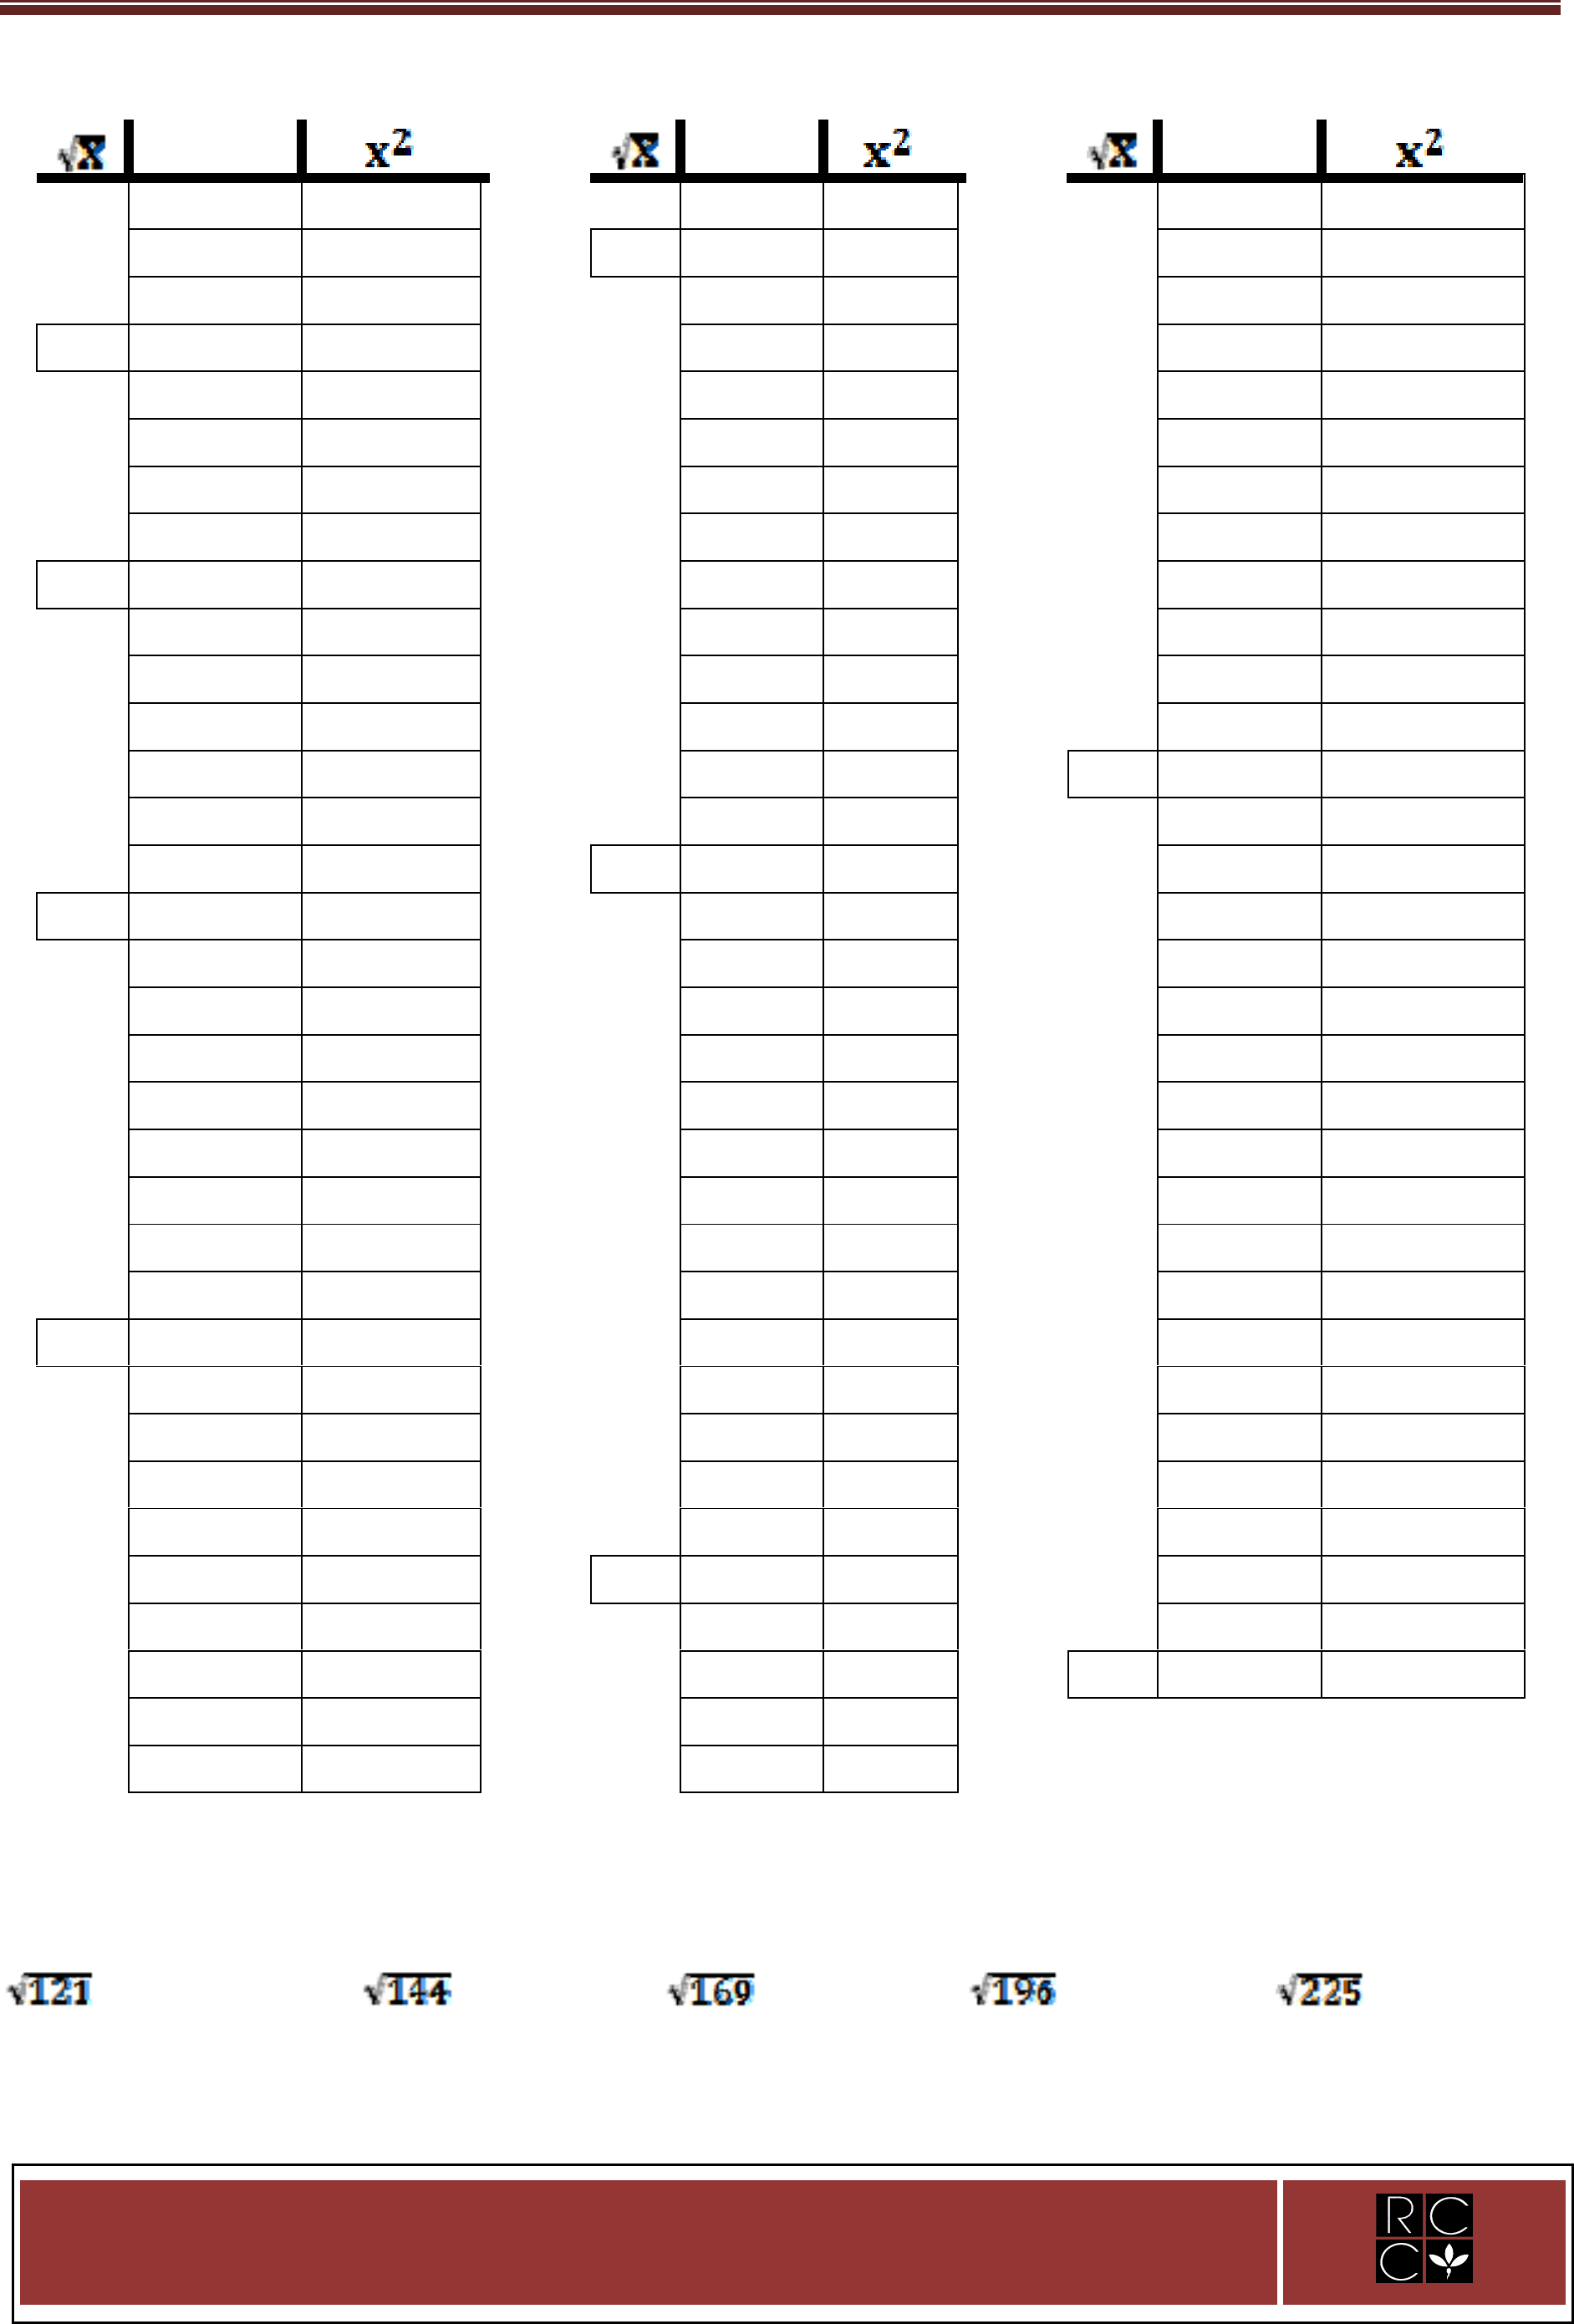 Worksheets 1to 100 Tables And Squares Chart Images square and root chart free download table of squares roots from 1 to